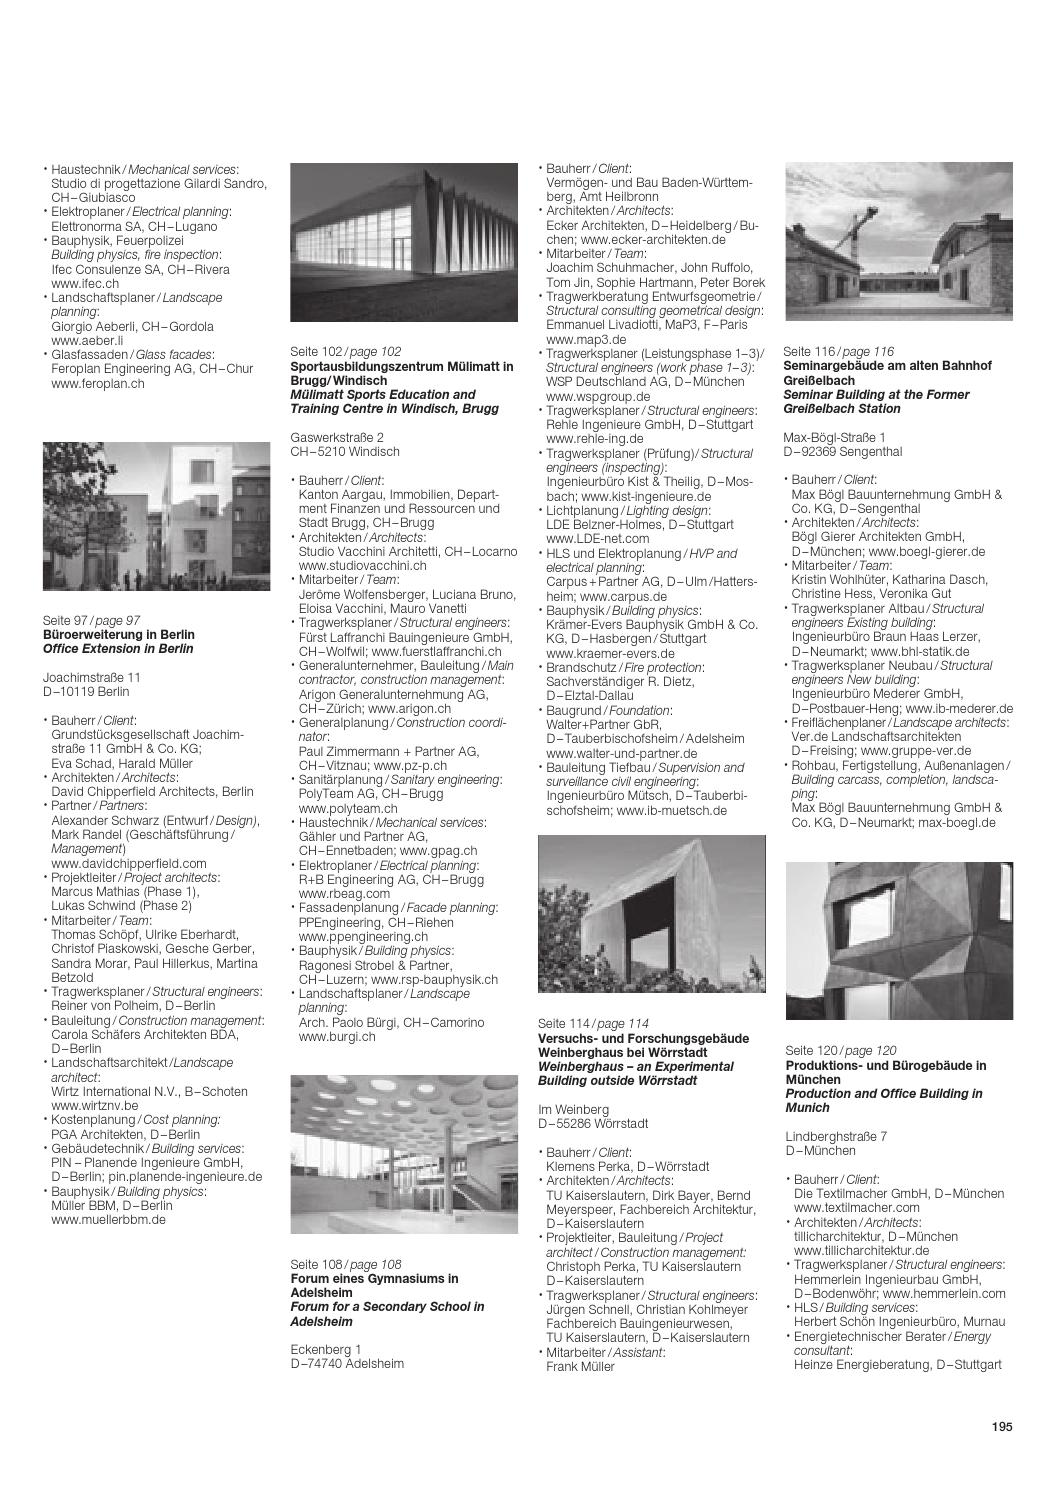 Generalunternehmer Stuttgart best of detail beton by detail issuu